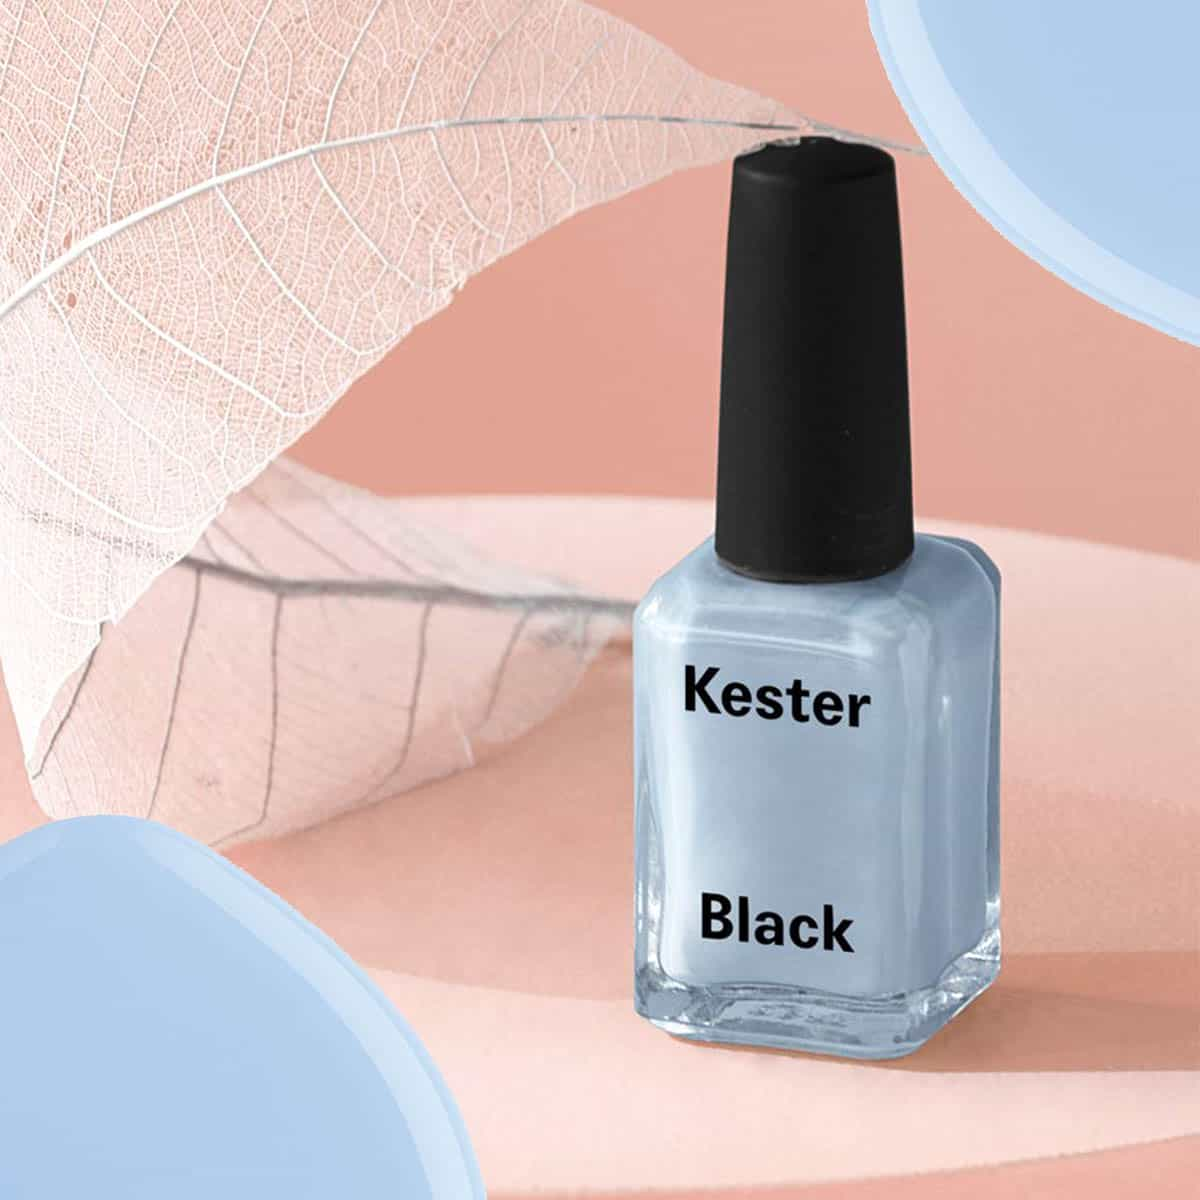 kester-black-forget-me-not-nail-polish-campaign-dusty-sky-blue_1000x1384_crop_bottom